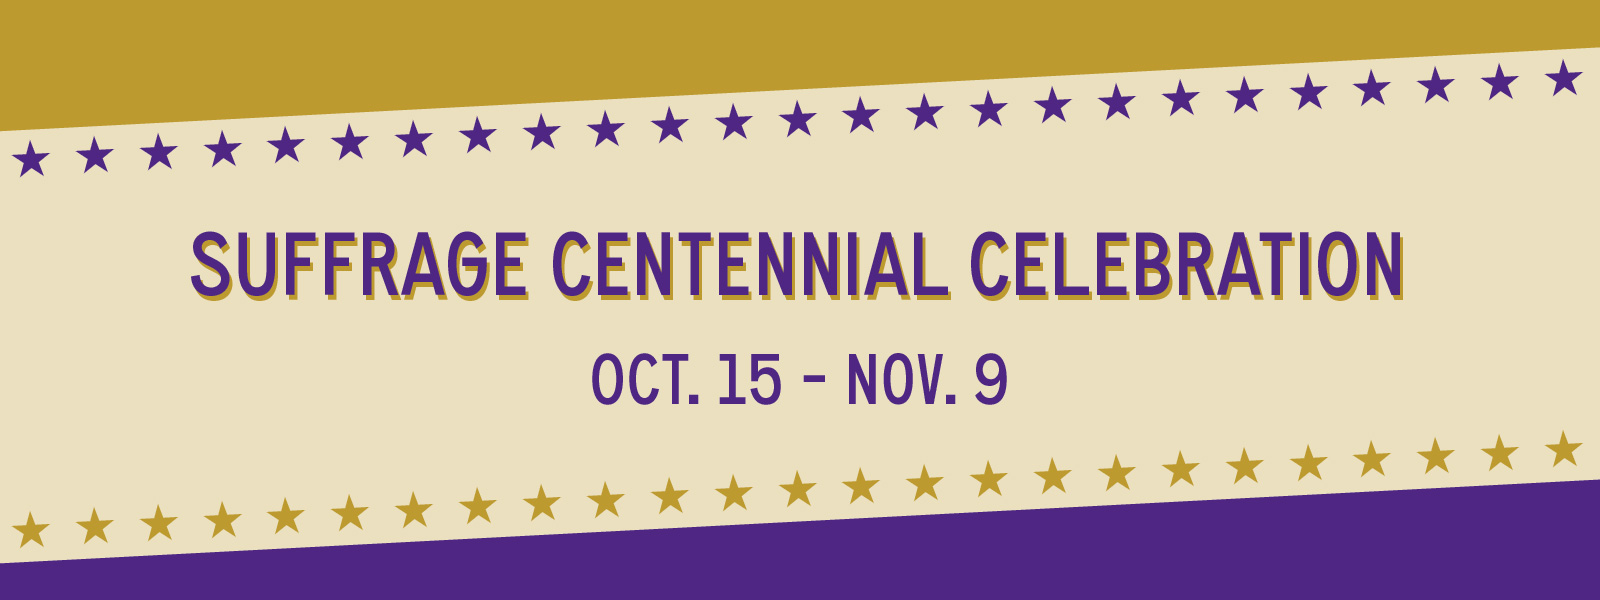 Suffrage Centennial Celebration